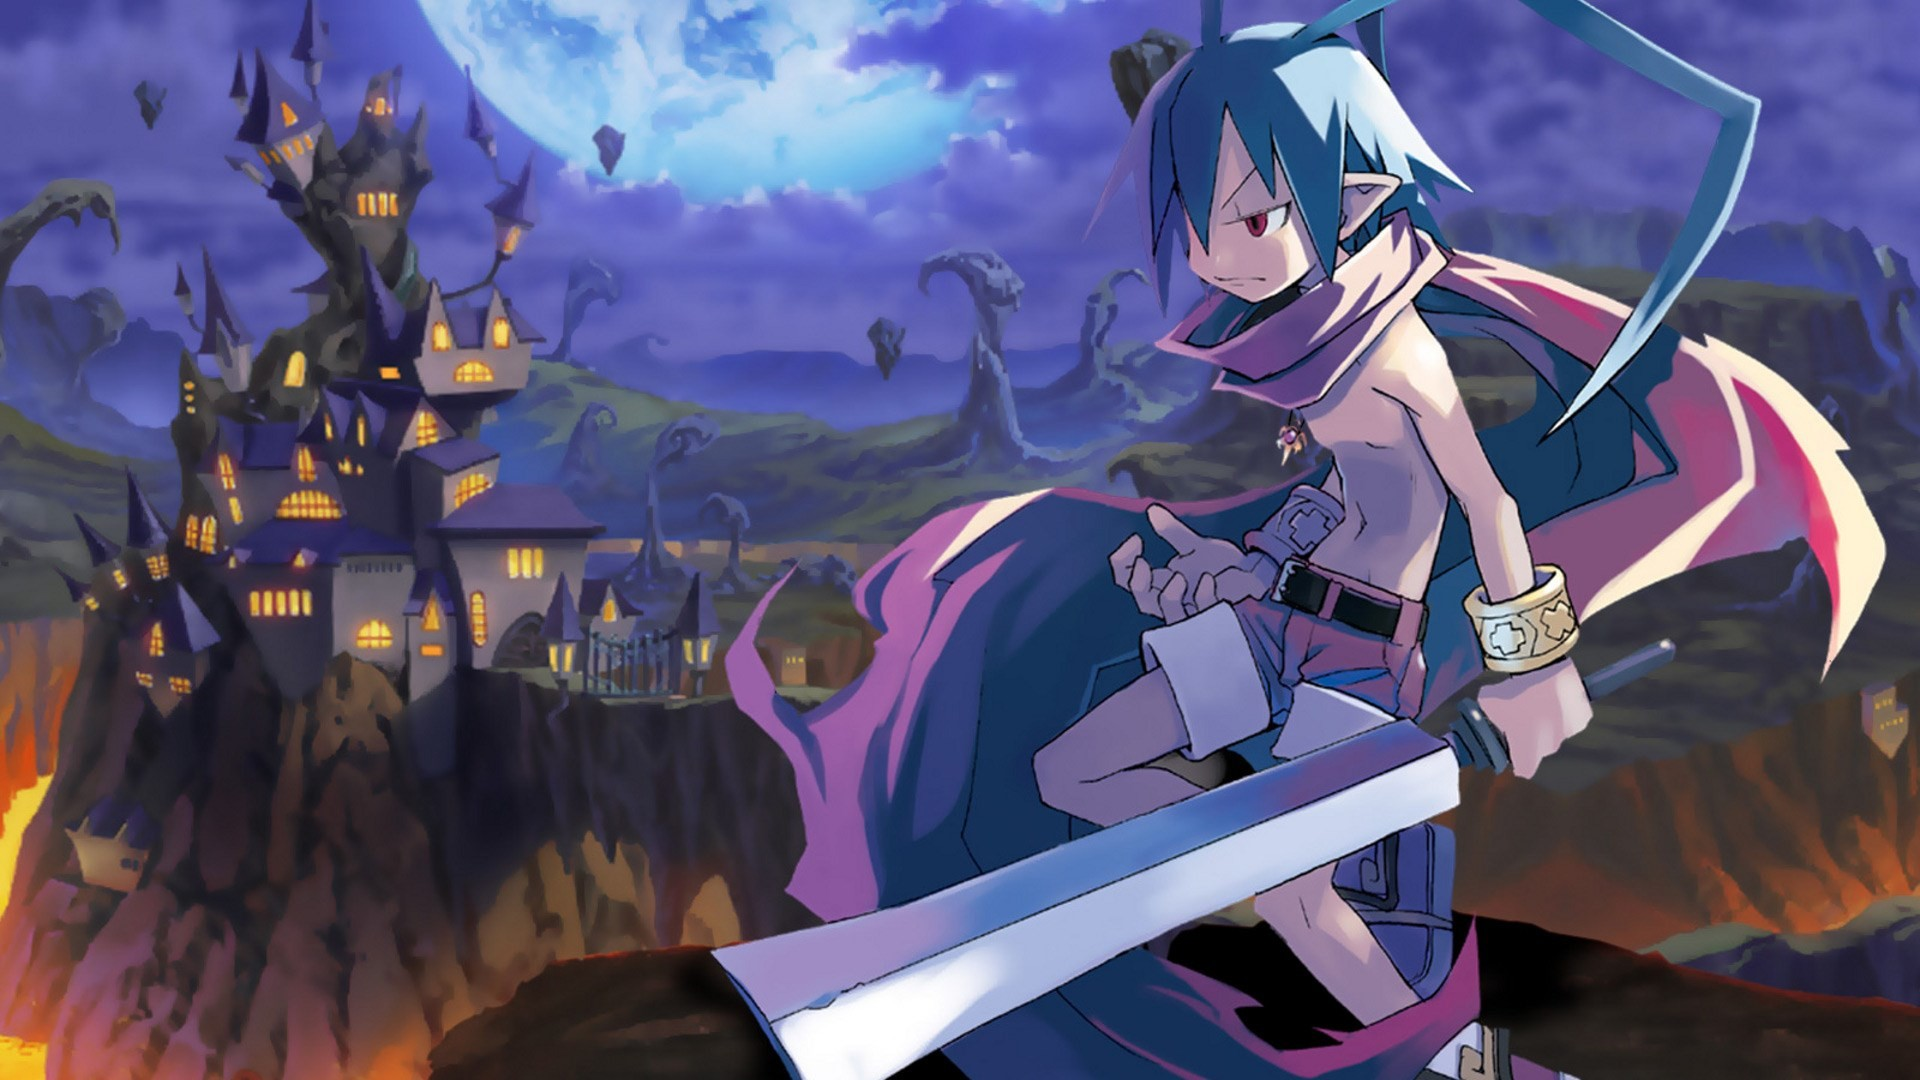 1920x1080 disgaea hour of darkness backgrounds images,  (289 kB)